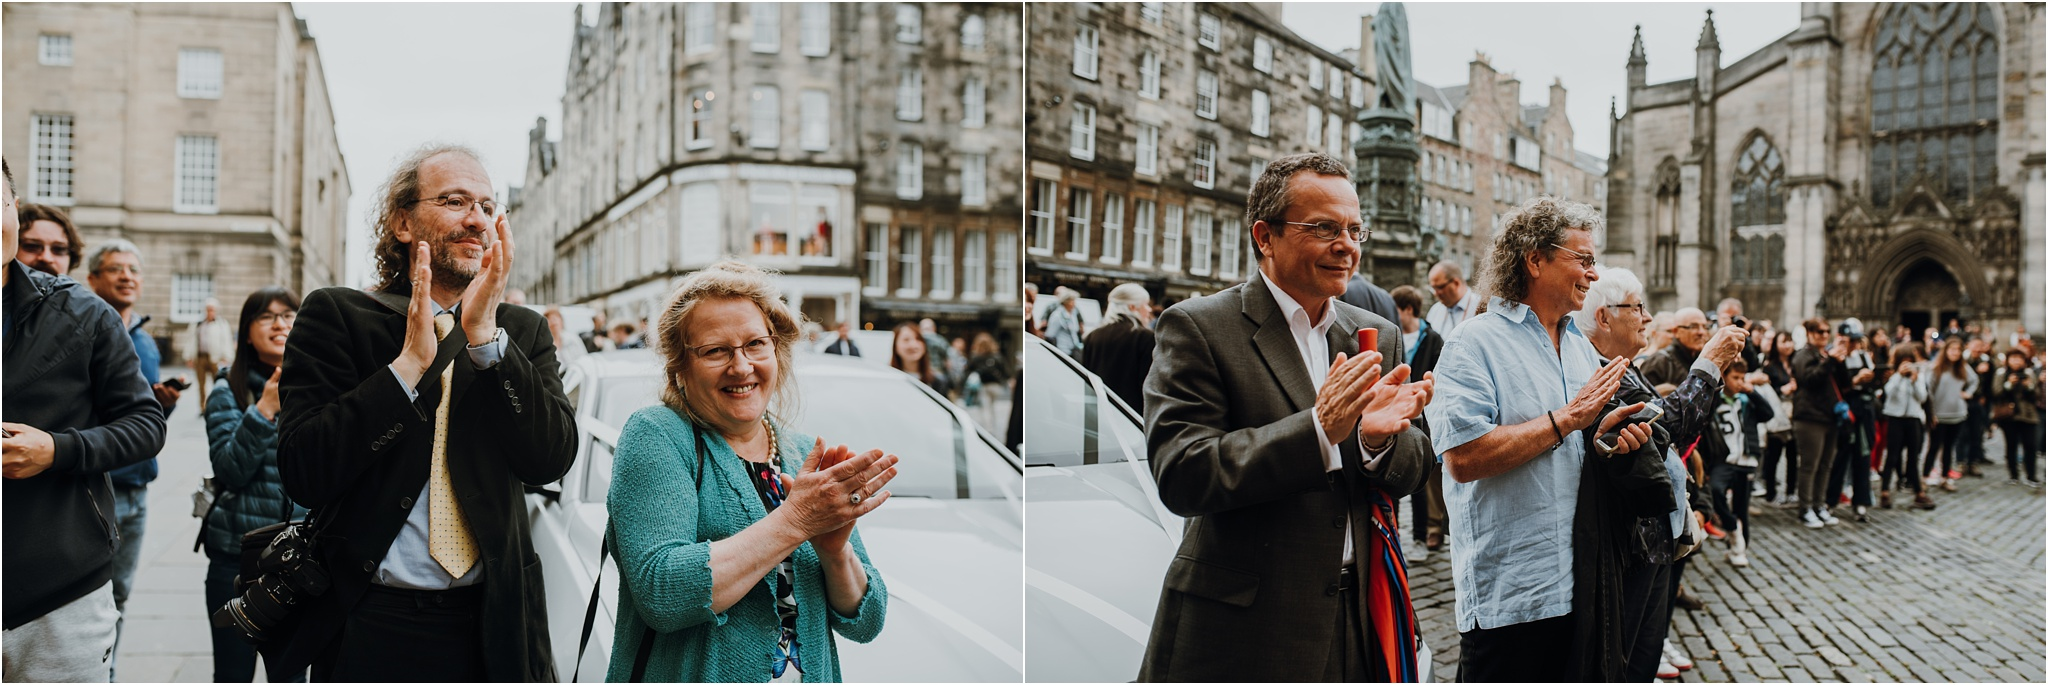 Edinburgh-wedding-photographer_27.jpg